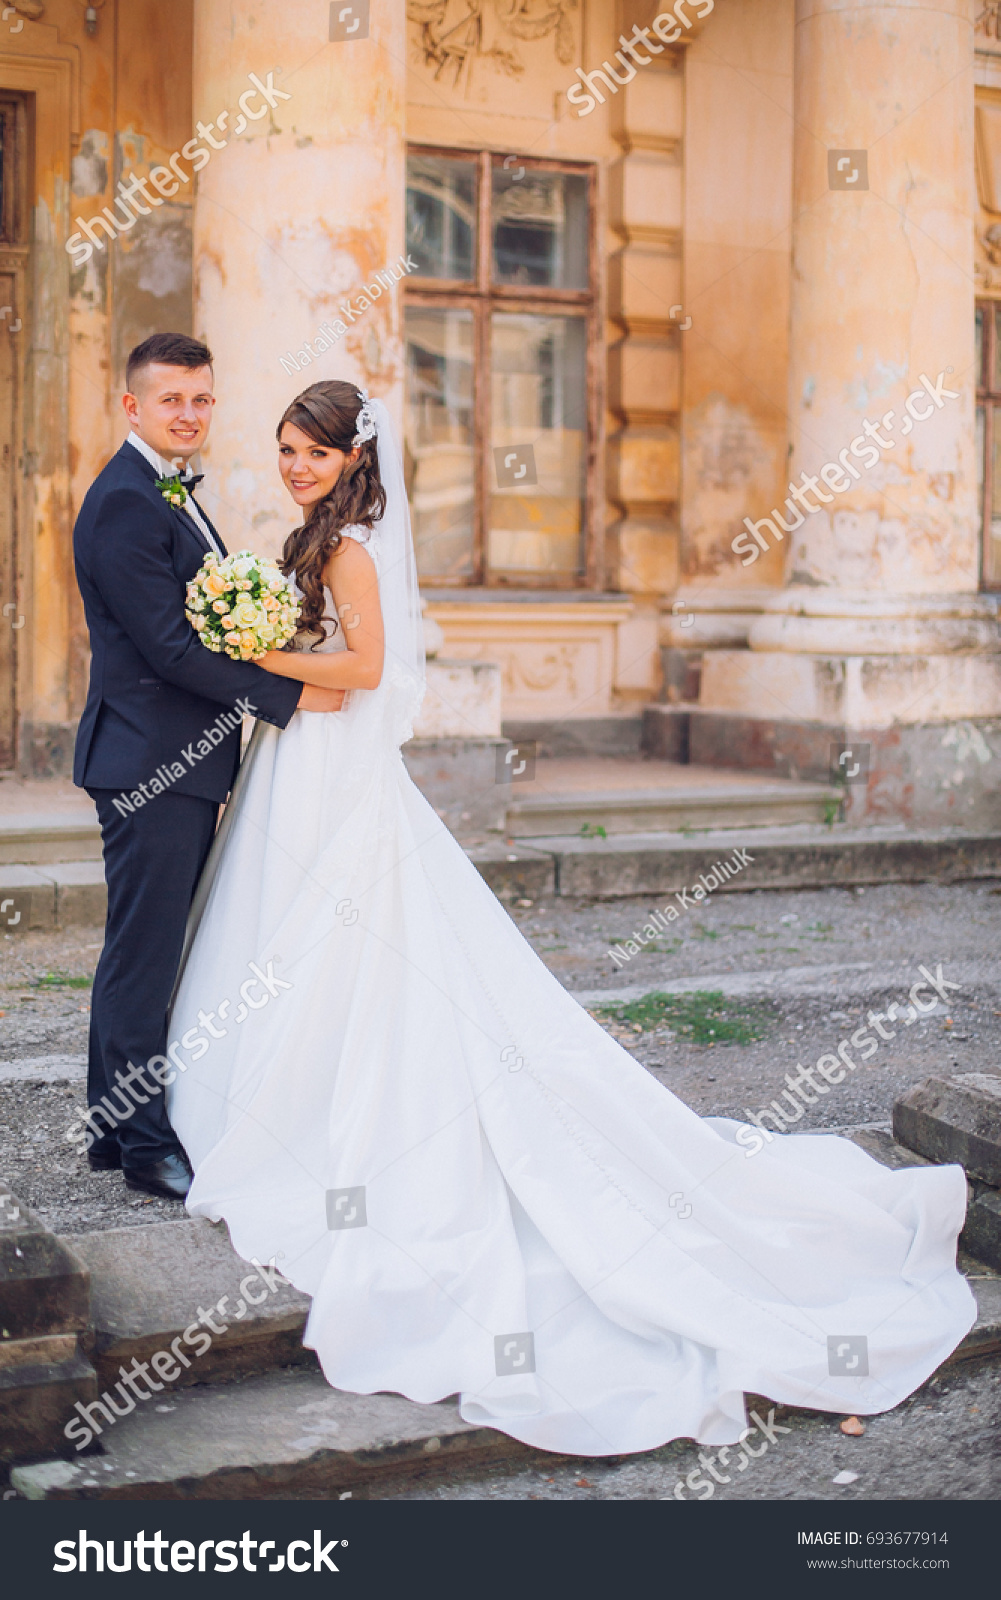 ed883516014 Beautiful romantic wedding couple of newlyweds hugging and kiss each other  near old castle with columns